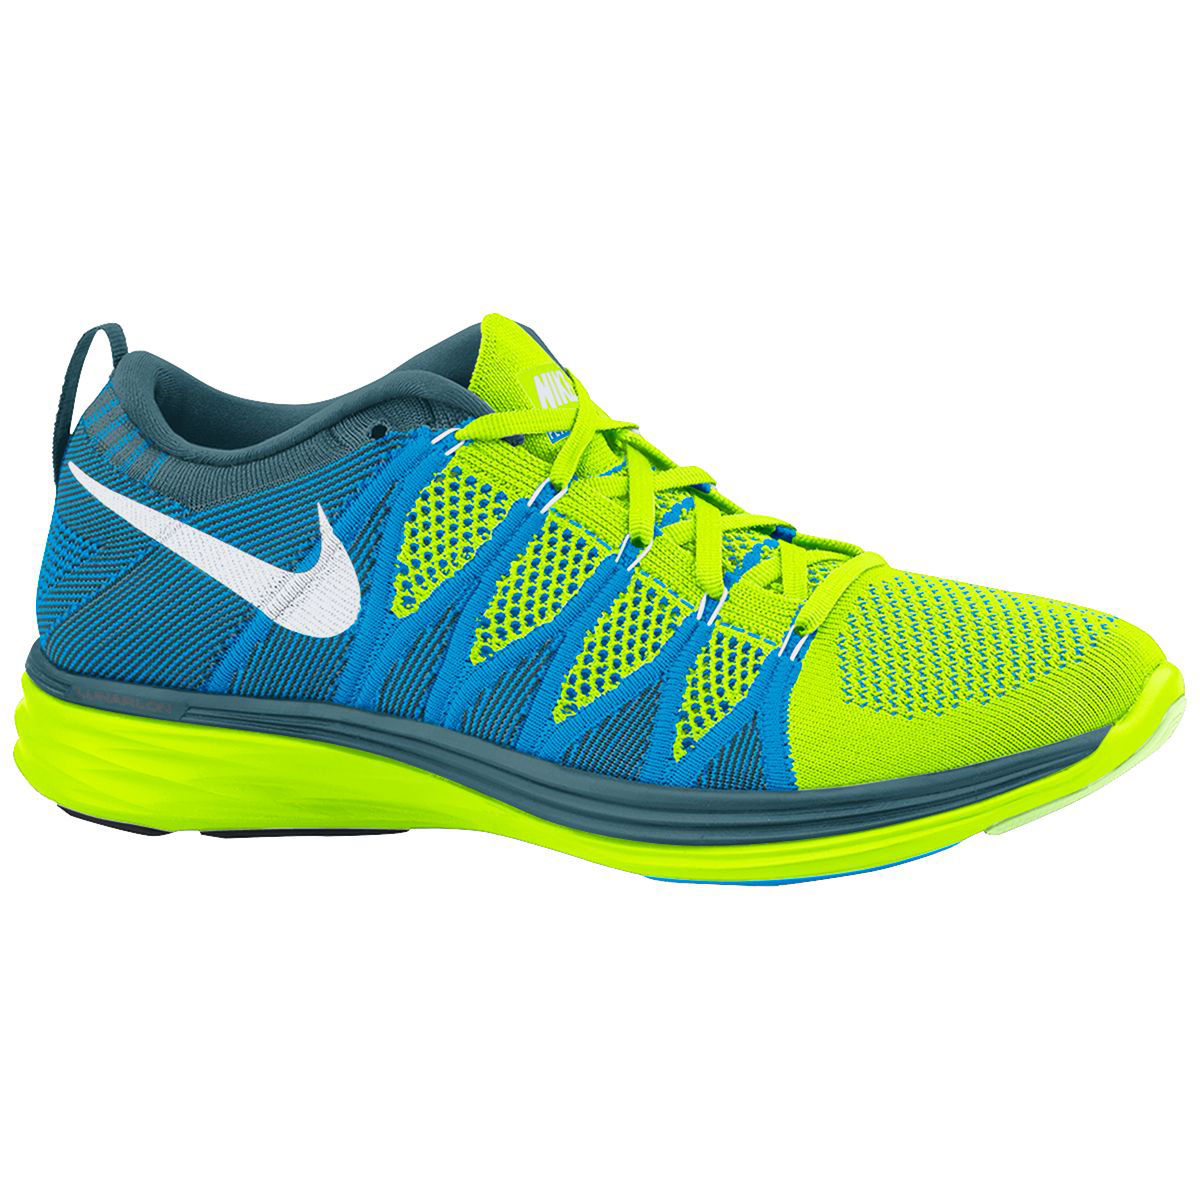 Nike-Flyknit-Lunar2-Shoes-SP14-Cushion-Running-Shoes-Yellow-White-Blue